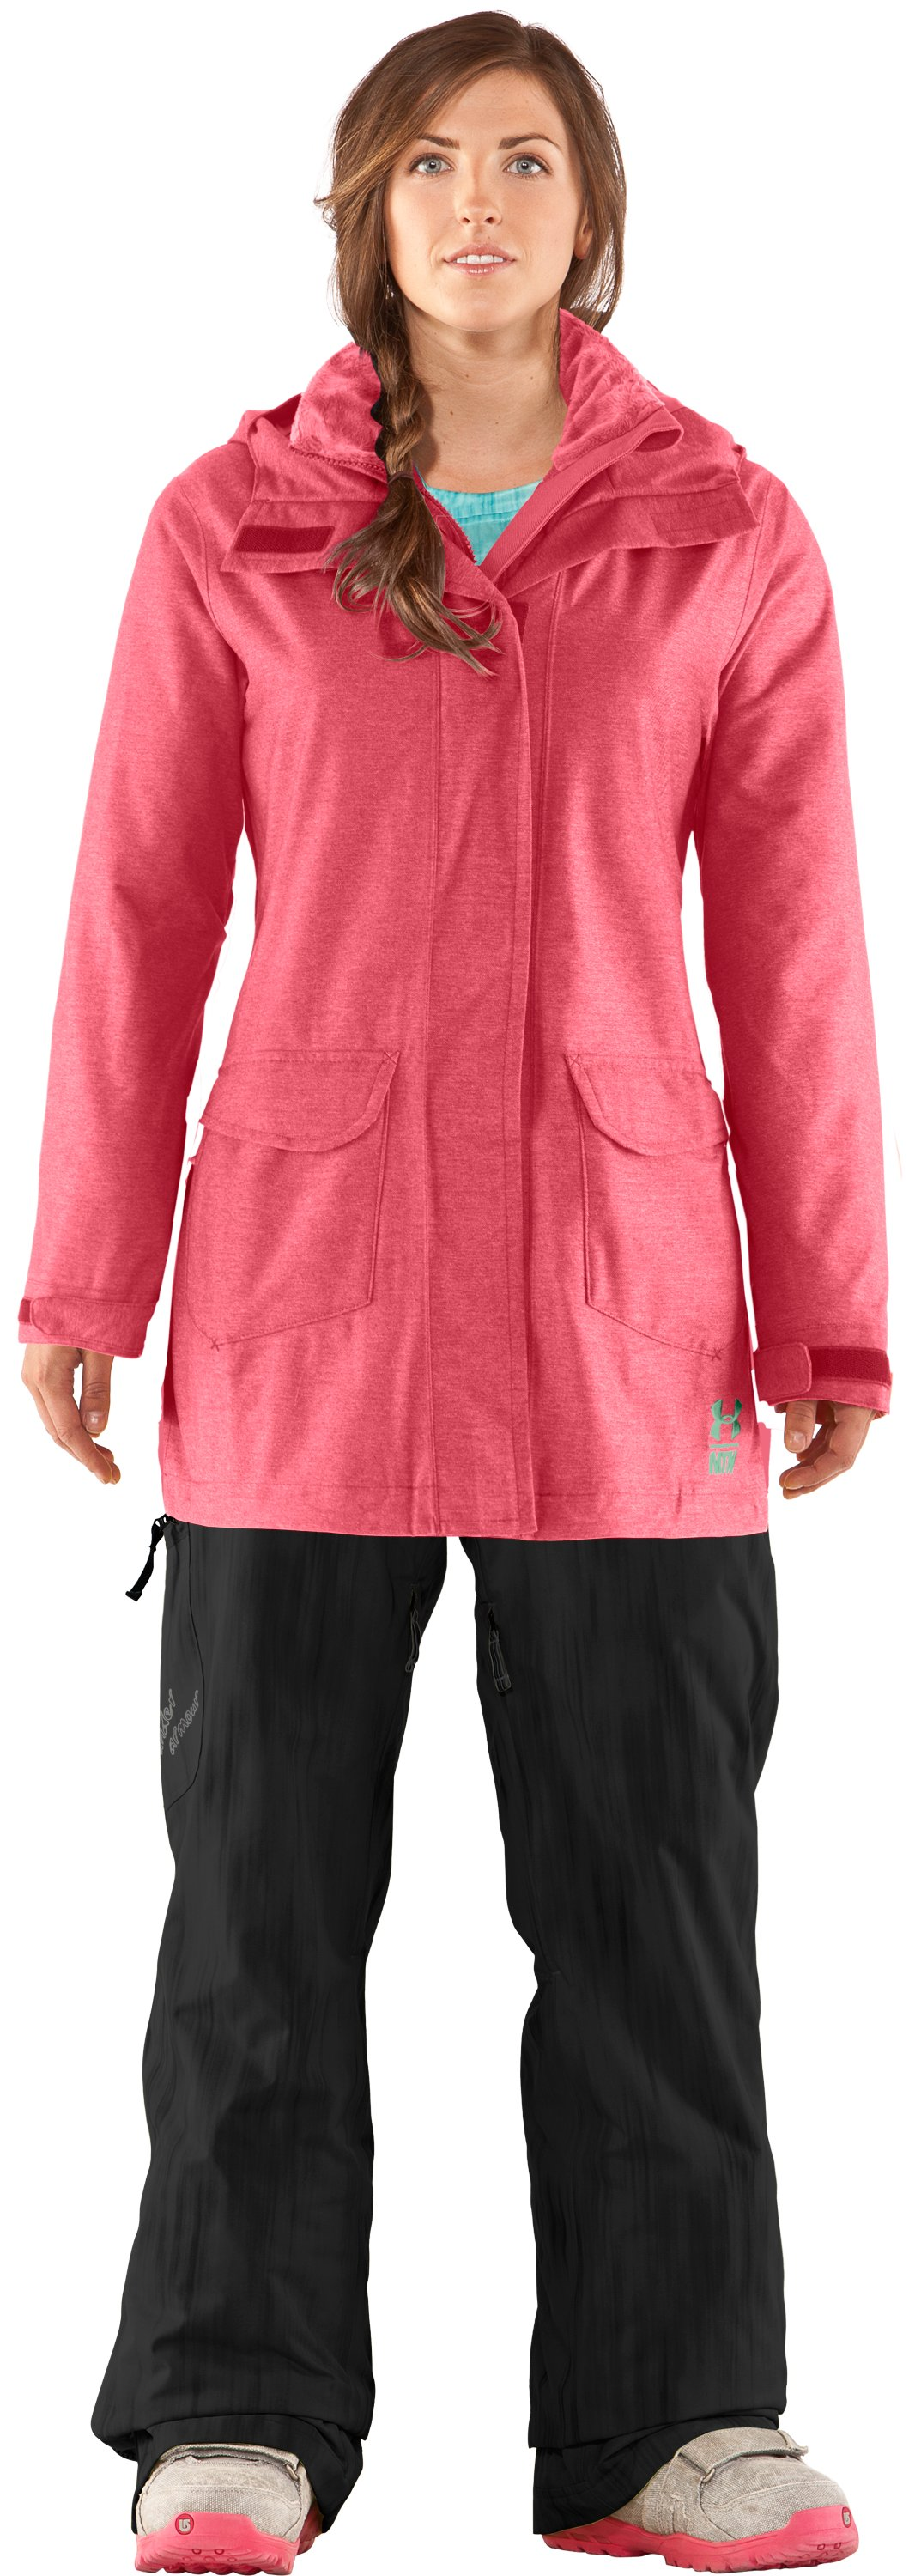 Women's After Forever Shell Jacket, Daiquiri, Front